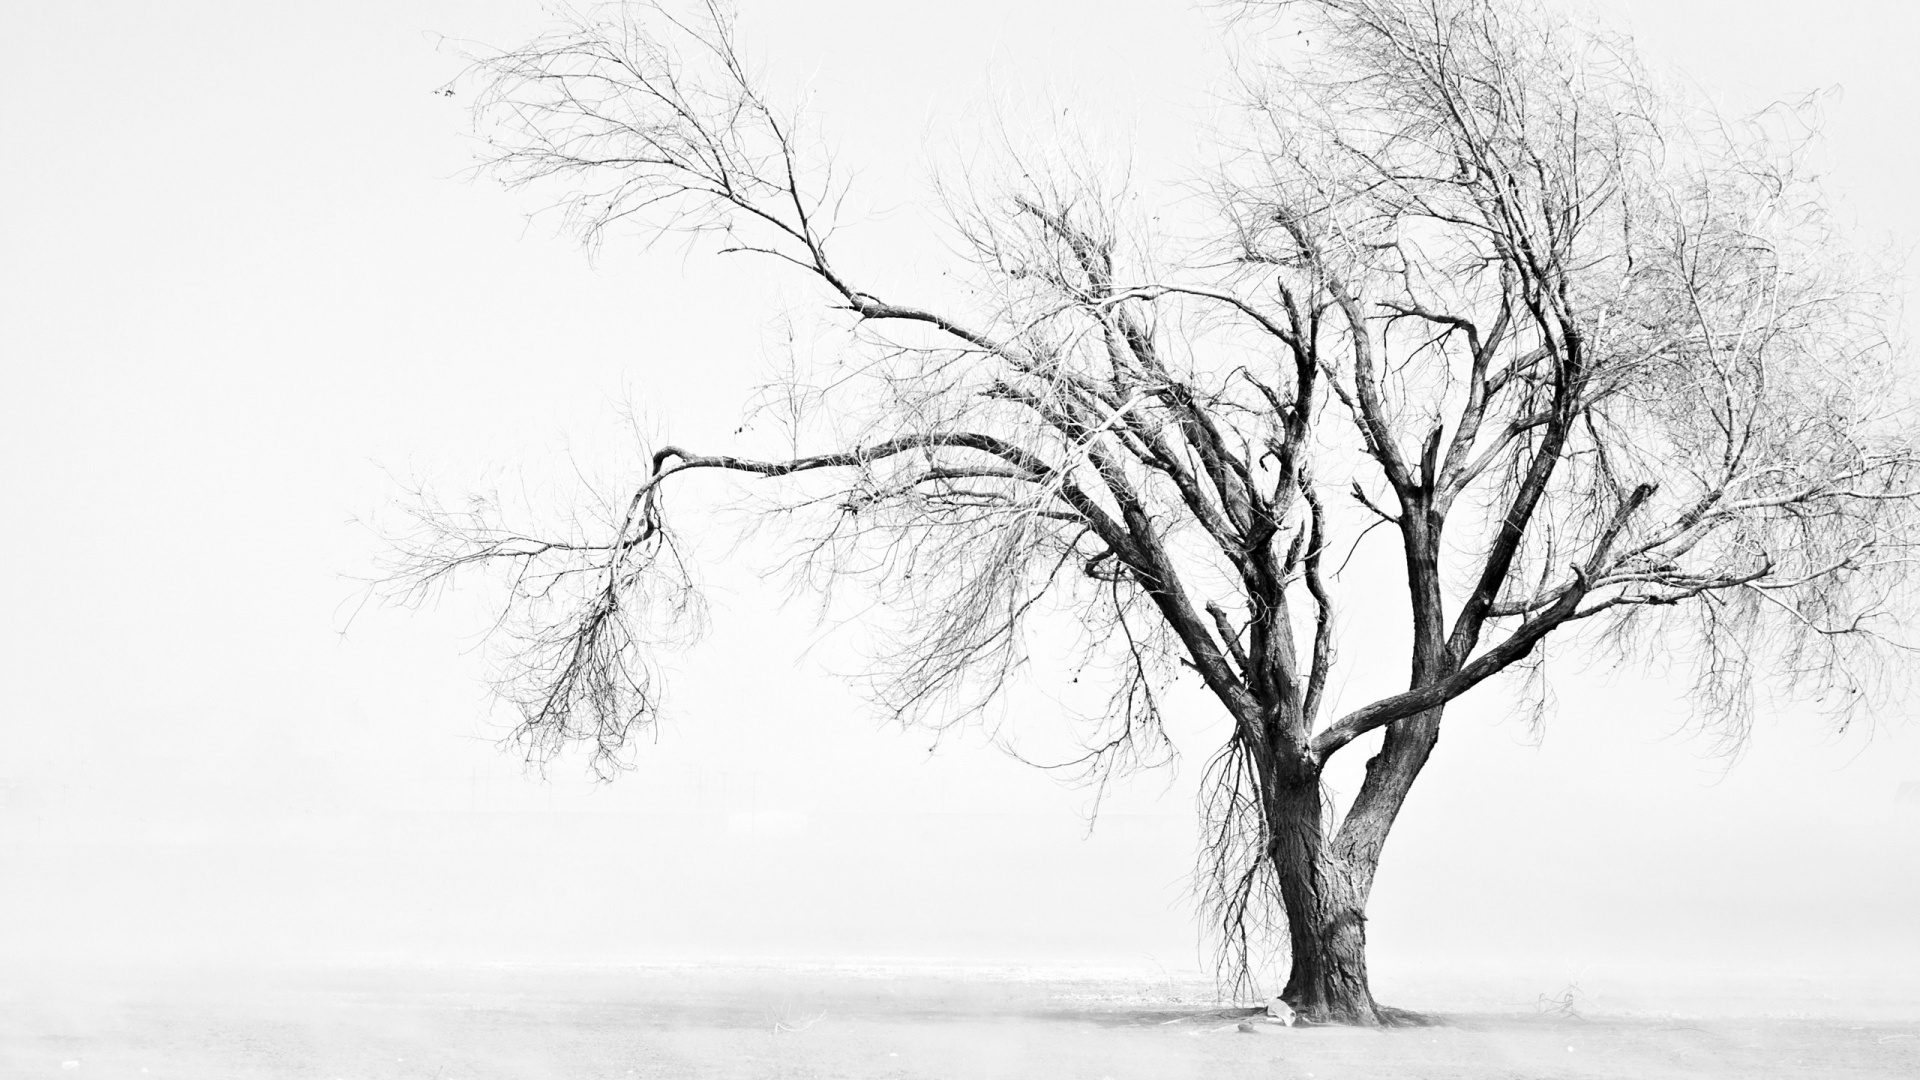 Sad white wallpaper 1920 1080 hd wallpapers hd - Download white background hd ...